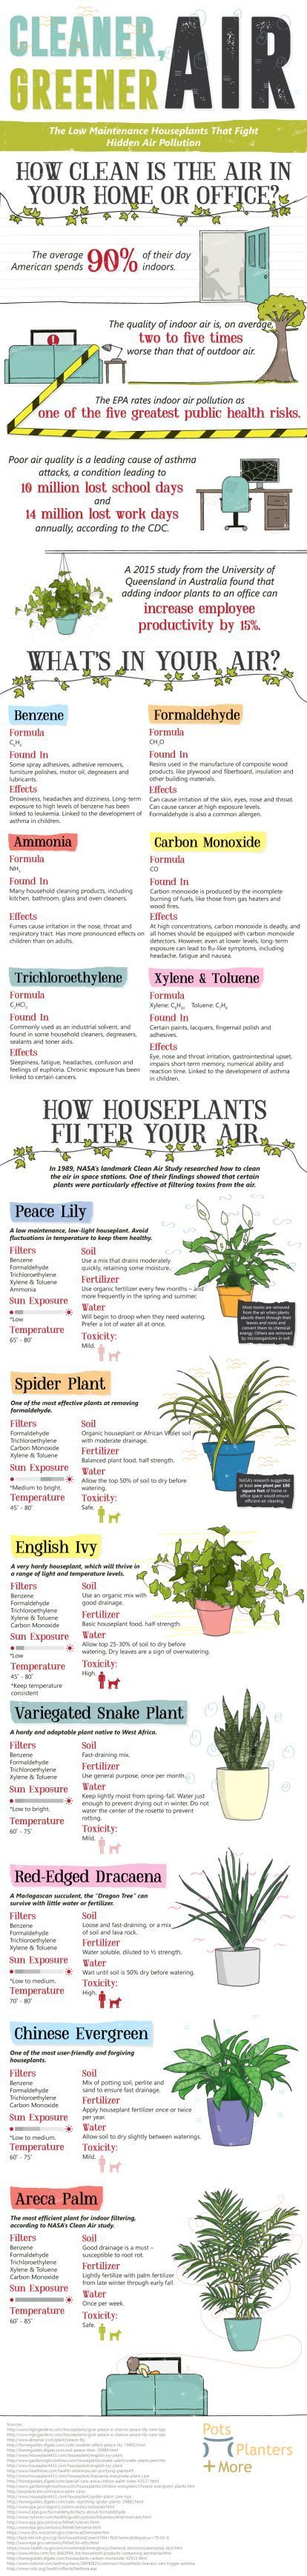 Best 25 air pollution ideas on pinterest environmental for Pollution fighting plants